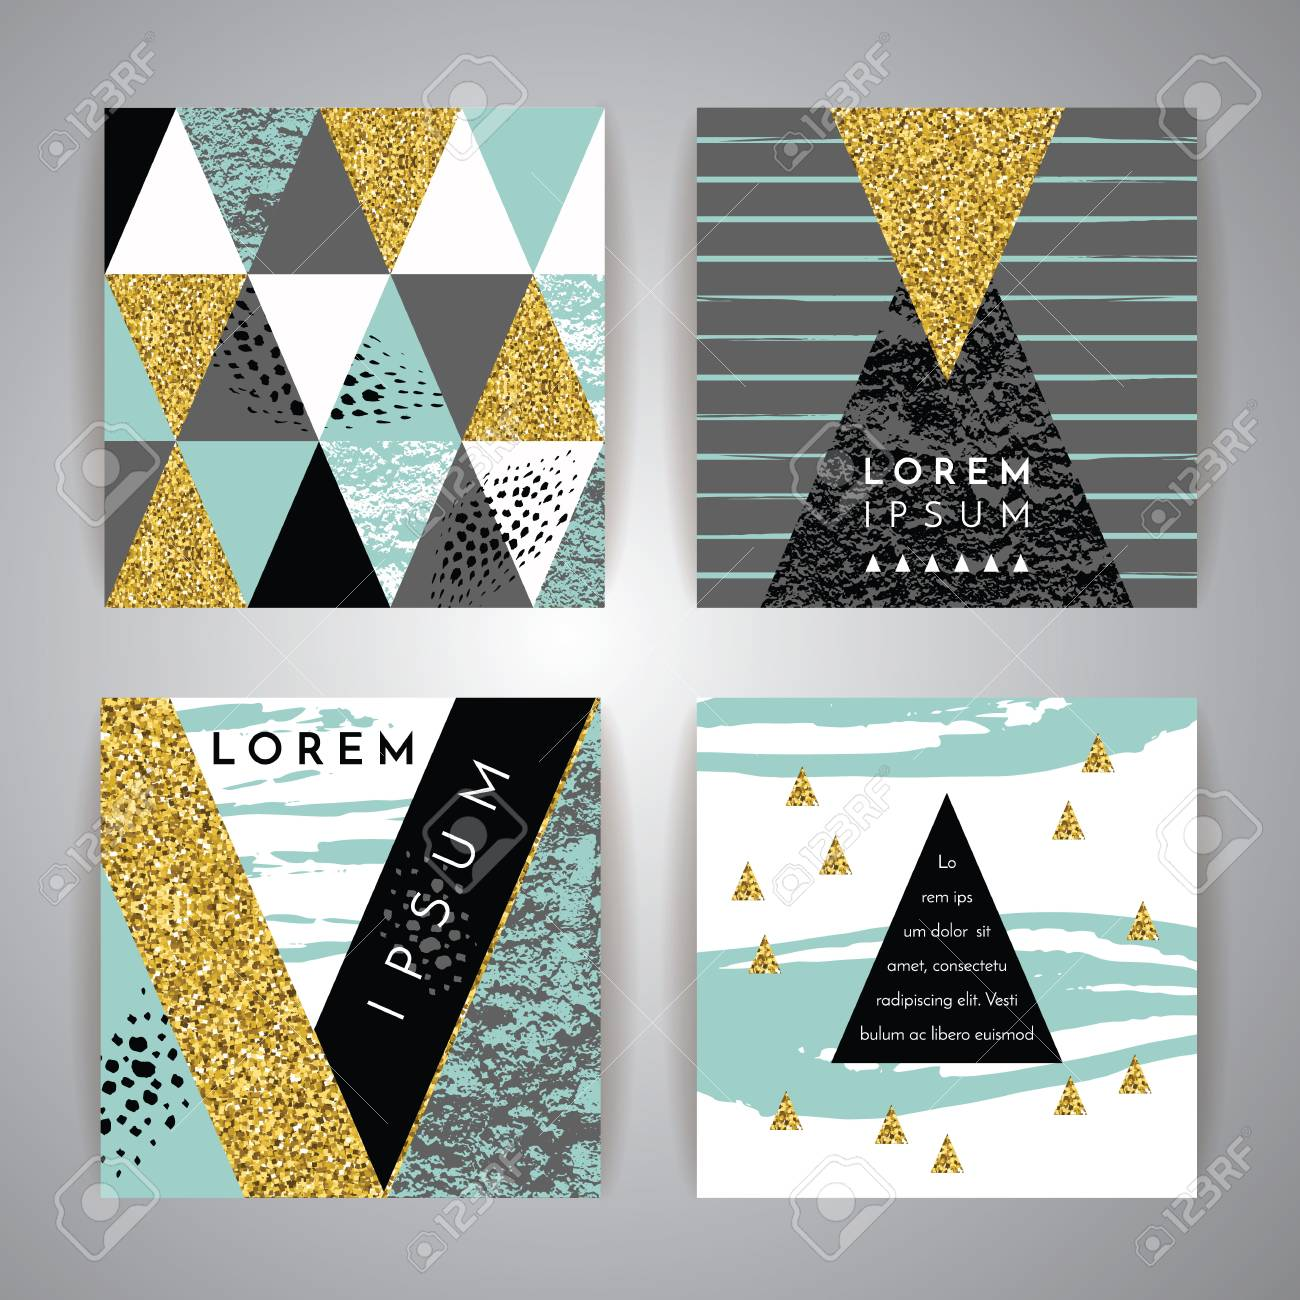 Set of abstract geometric backgrounds. Hand drawn vintage texture and geometric elements. Modern and stylish abstract design poster, cover, card design. Vector templates. - 55070697